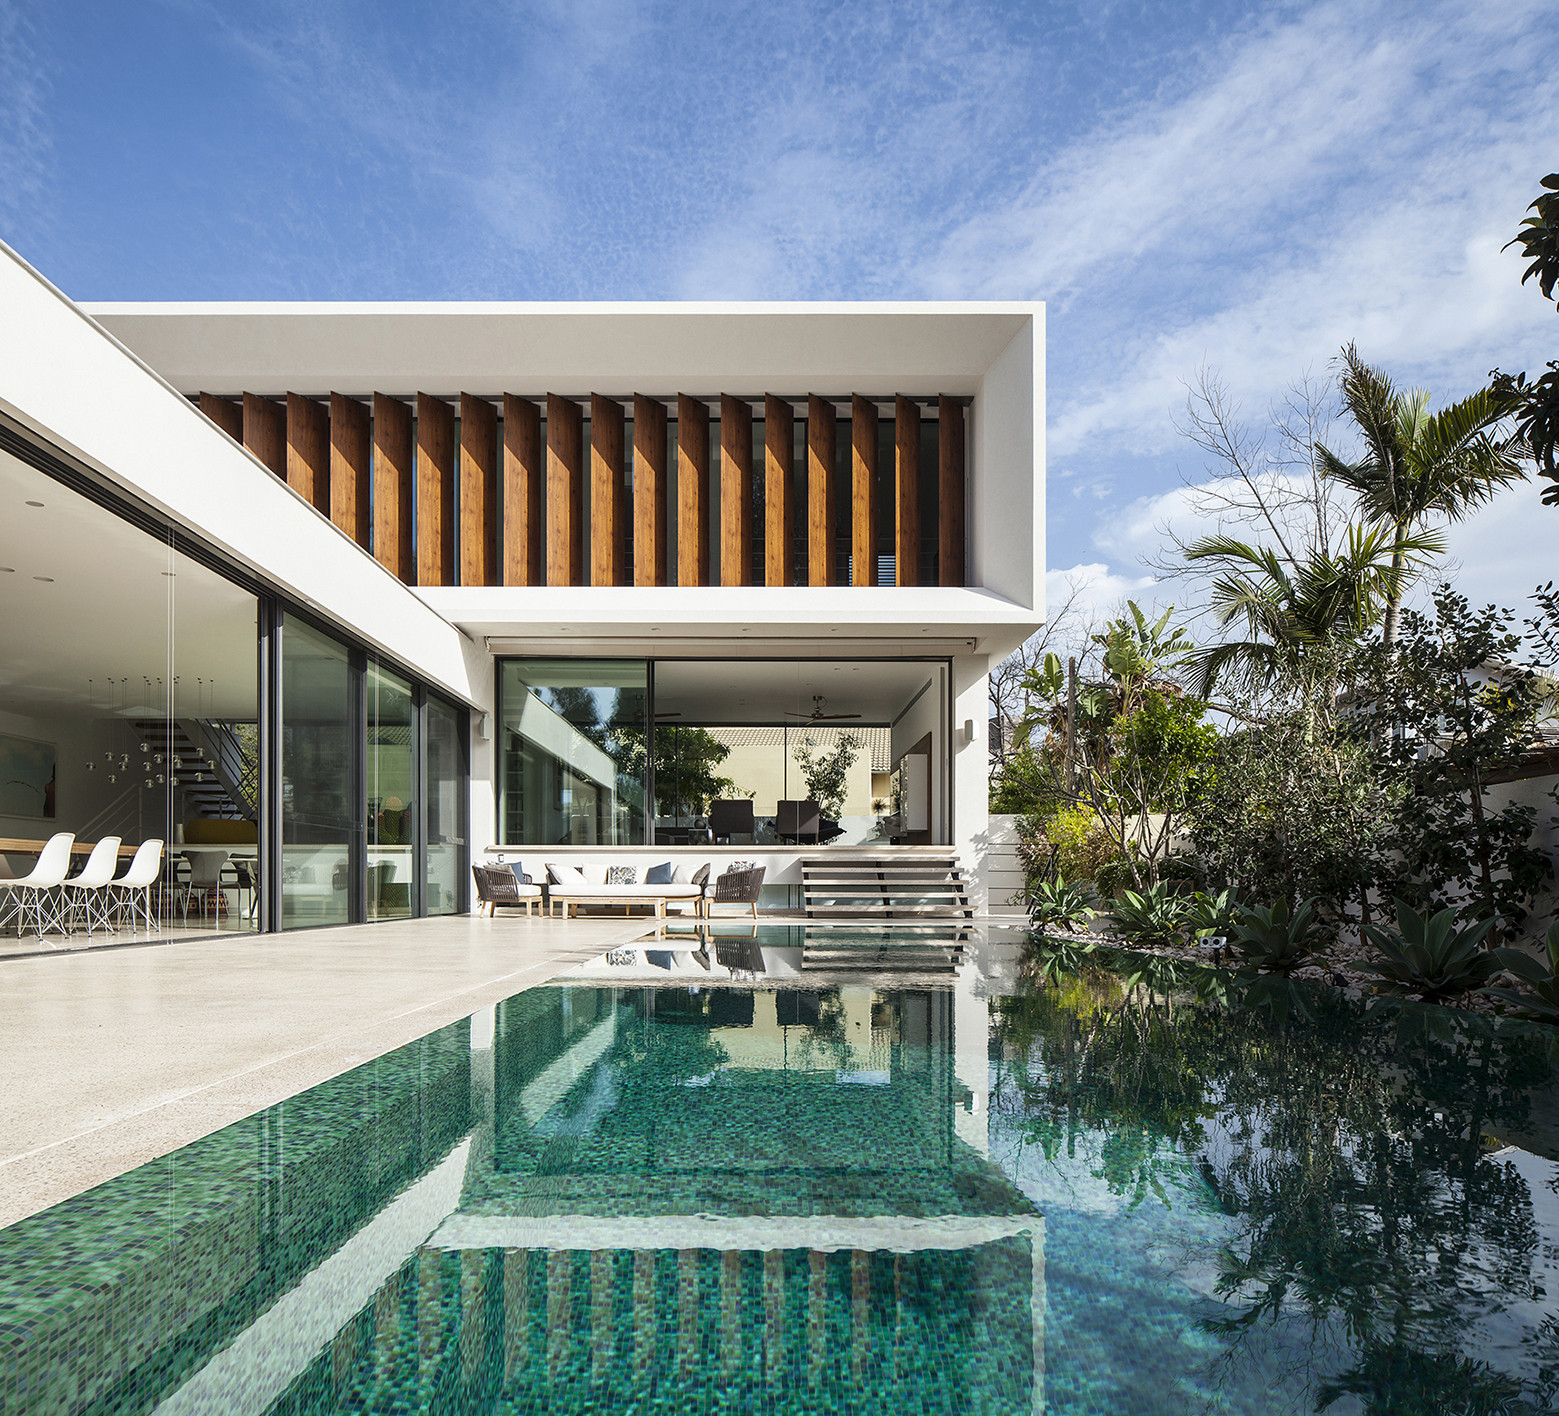 Mediterranean villa paz gersh architects archdaily for Villa moderne design